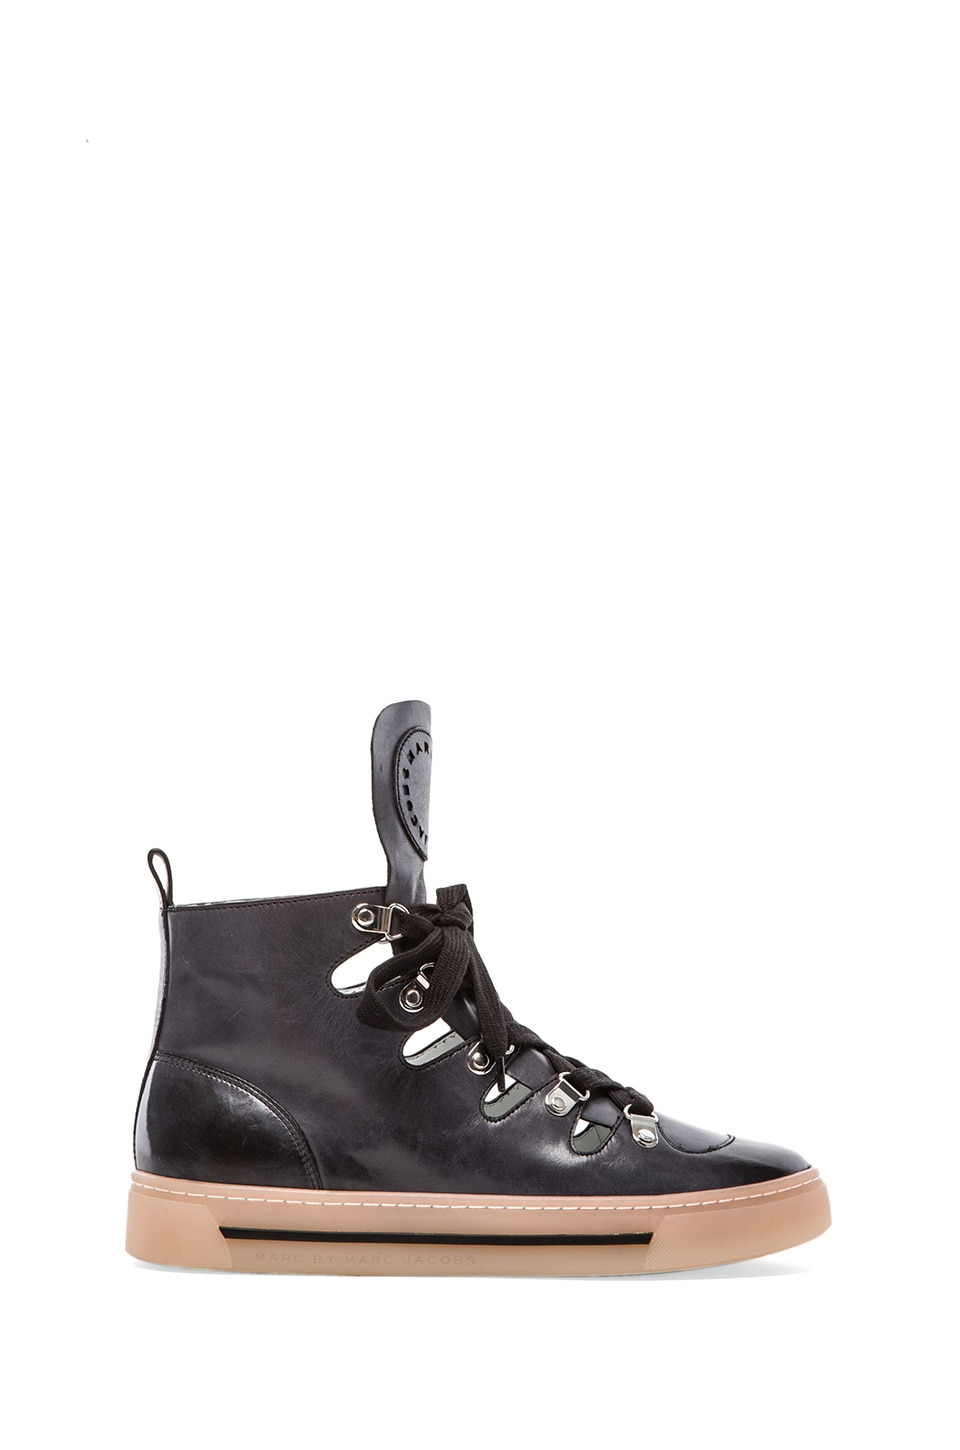 Marc by Marc Jacobs Cute Kicks Sneaker in Black